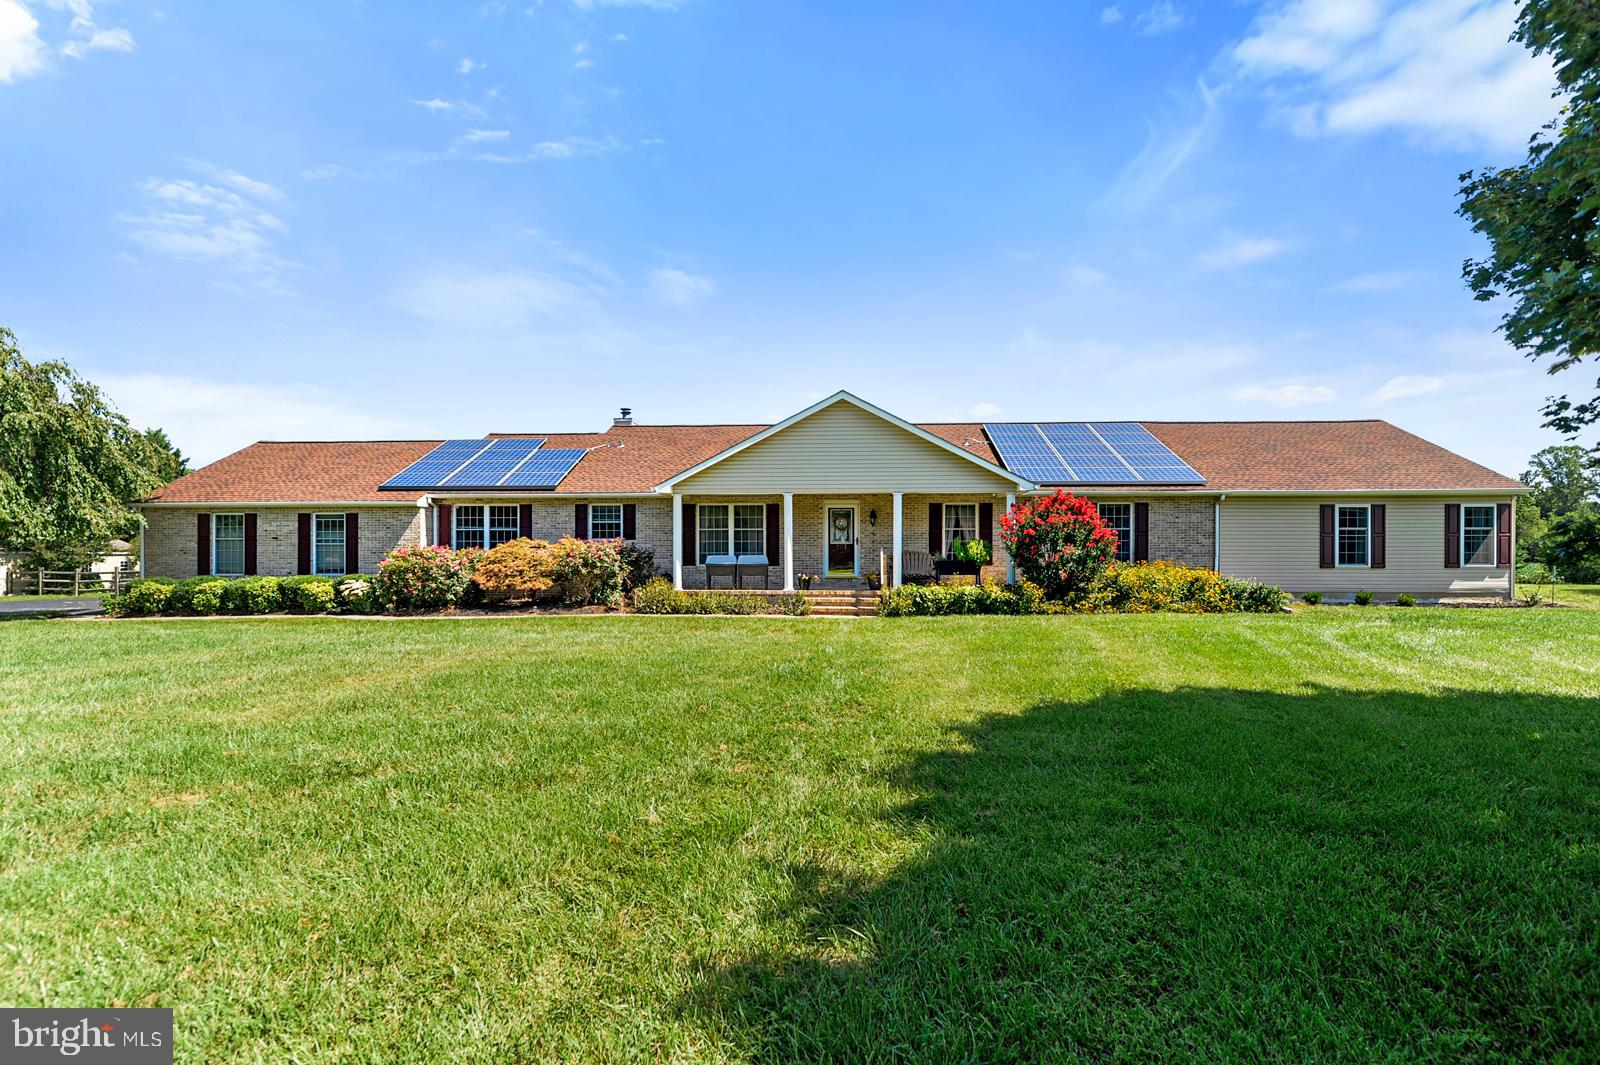 Located in Award Winning Appoquinimink School District on 4.39 AC, this Brick Ranch Home is over 3000 sq. ft. with 3 BRs, 2.5 Baths and a Recently Added 32' x 25' Bonus Room/In-law Suite/Den!  This Floor Plan is So Versatile & Will Meet Many Needs.  The Bonus Room has a Bay Window Overlooking the Expansive Back Yard, Living Area w/Wet Bar and Large Walk-In Closet.  The Primary BR can easily fit a King-Sized Bed, Double Closets and Elegantly Remodeled Full Bath.  The other 2 BRs are also Good Sized with the 2nd Full Bath Recently Remodeled with a Large Soaking Tub & Shower Stall w/Seat.  The Kitchen has Solid Surface Countertops w/Breakfast Bar, in the past few years all new Stainless Steel appliances - Gas Stove & Built-In Microwave, Dishwasher and Refrigerator, Recessed Lighting & Large Breakfast Area.  The Kitchen Opens to the FR with HW Floors & Wood Burning Fireplace; French Doors lead to the 3-Season Room (w/replacement windows) which in turn Leads Out to the 2 Tiered Composite Deck and Patio.  The Formal LR has HW floors & a Bay Window w/Views of Lush Landscaping and Wildlife.  The Formal DR has Crown Molding, Wainscoting, and HW Floors.   Let's not forget about the Brand New Roof with Solar Panels!  Laundry Room w/Utility Sink, Overhead Cabinets, and a Door Leading to the Back Yard.  The Attached Garage is Enormous at 625 sq. ft., Service Door and Utility Sink.  The Paved Driveway has a Large Turnaround & Plenty of Room for Guests.  There is a Covered Carport with Concrete Base which can Fit 2 Cars.  In addition, there are 2 Sheds Both with Electric.  One is 28' x 16' w/1 garage door and the other is 14' x 10'.  Partial Basement w/Bilco Doors, Crawl Space with Concrete Floor, New Water Supply Lines, New Water Conditioner w/Reverse Osmosis.  Electric Service Panel Replaced  2017 and Generator Transfer Switch Added.  Fios available!   Quiet countryside location and just a few minutes away from Middletown and RT 1.